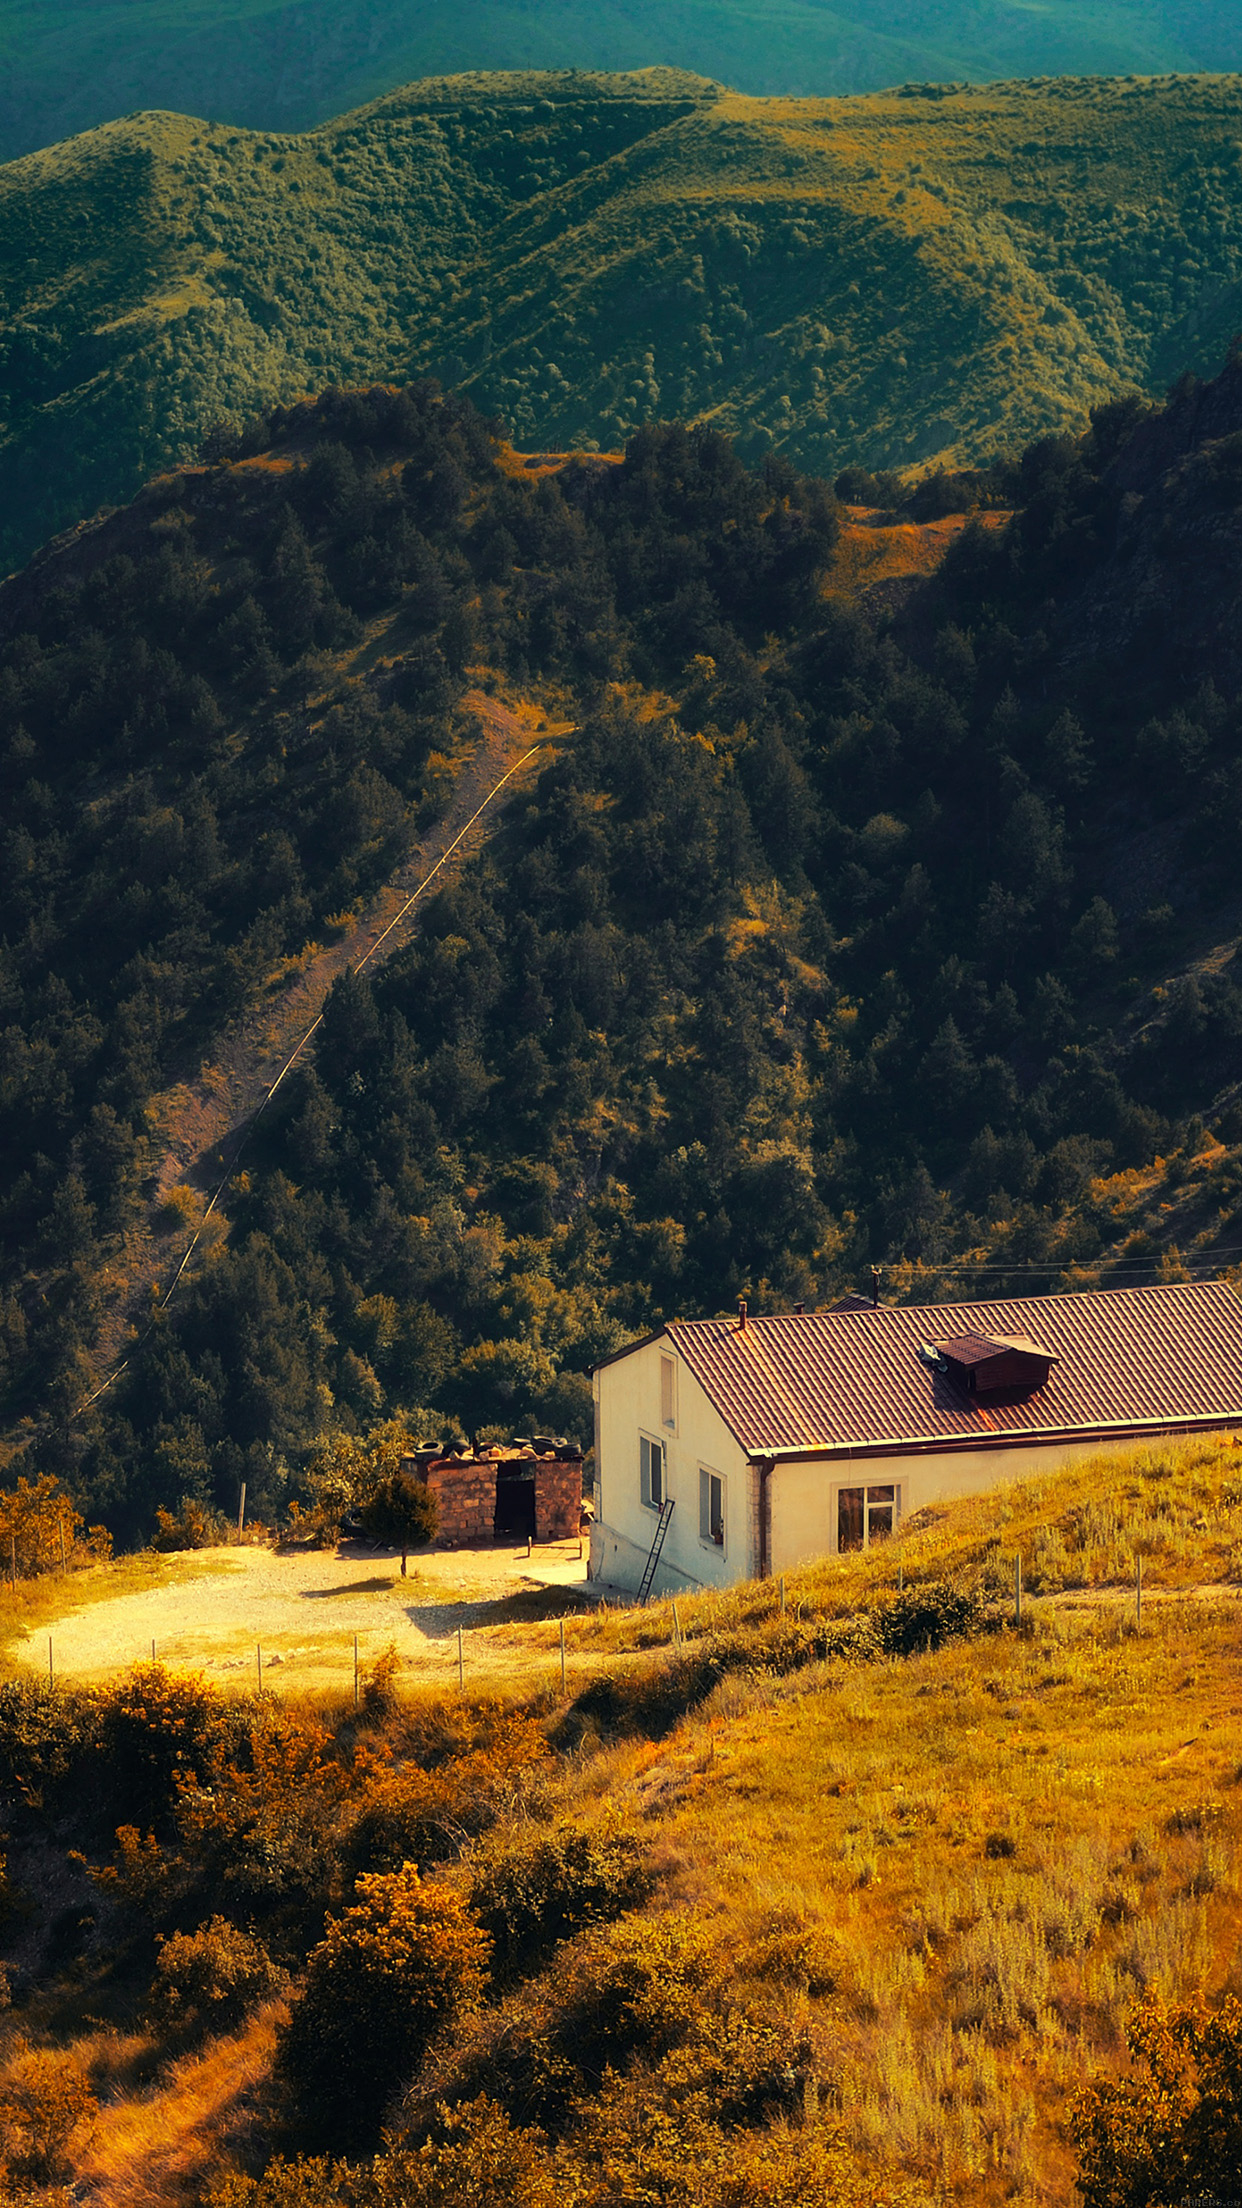 Karabakh Armenia Nature With Mountain House Fall Android wallpaper